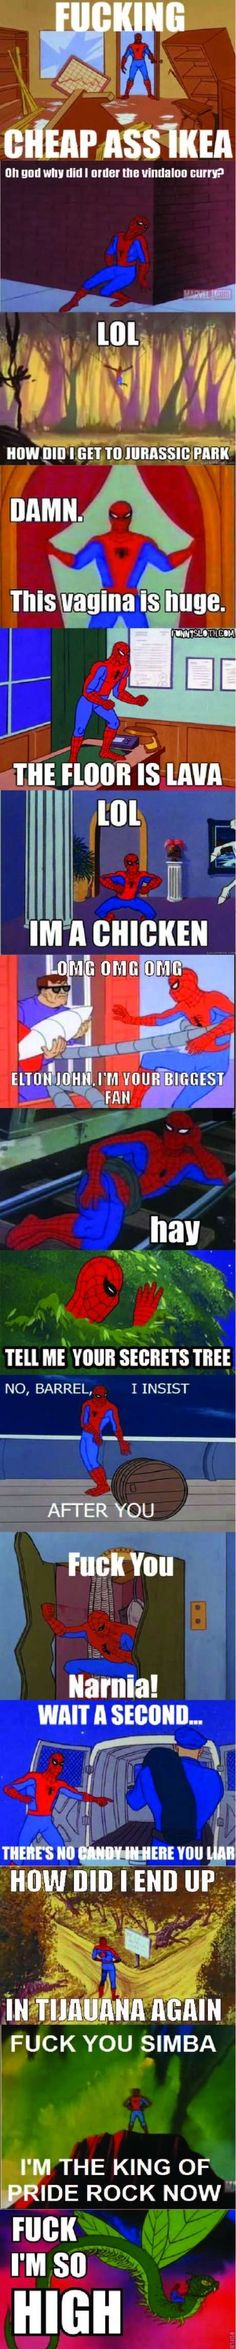 I don't even like comic book characters of any kind but this made me laugh so hard!